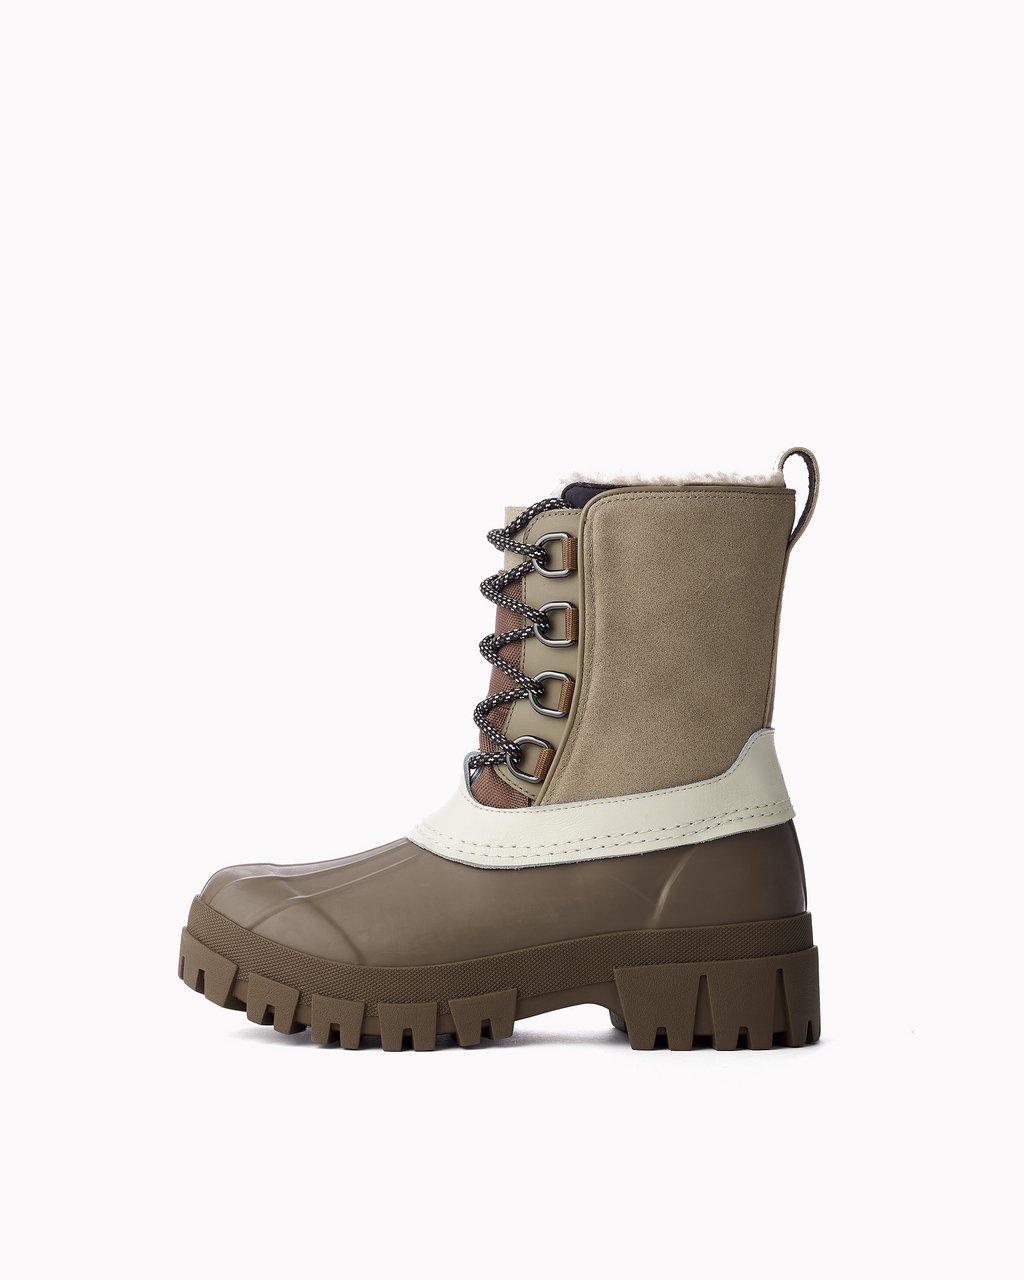 RB WINTER BOOT